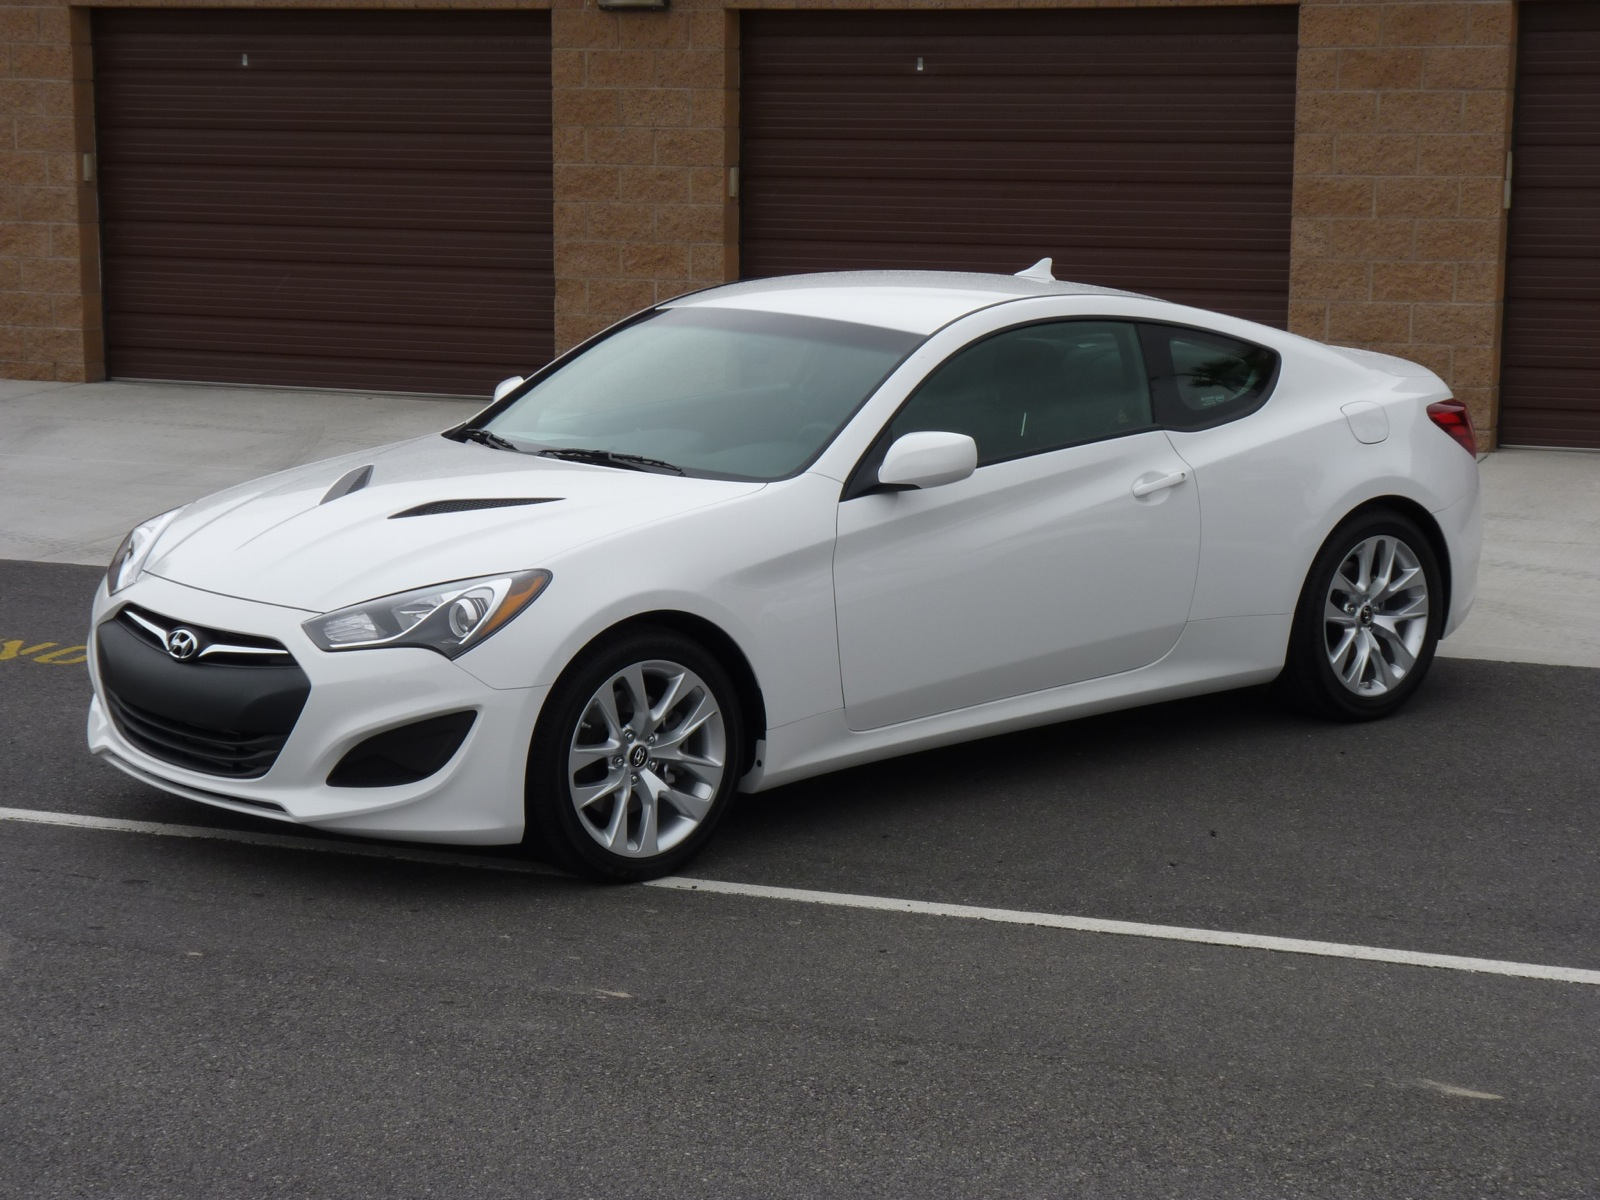 2013 Hyundai Genesis Coupe Gas Mileage The Car Connection